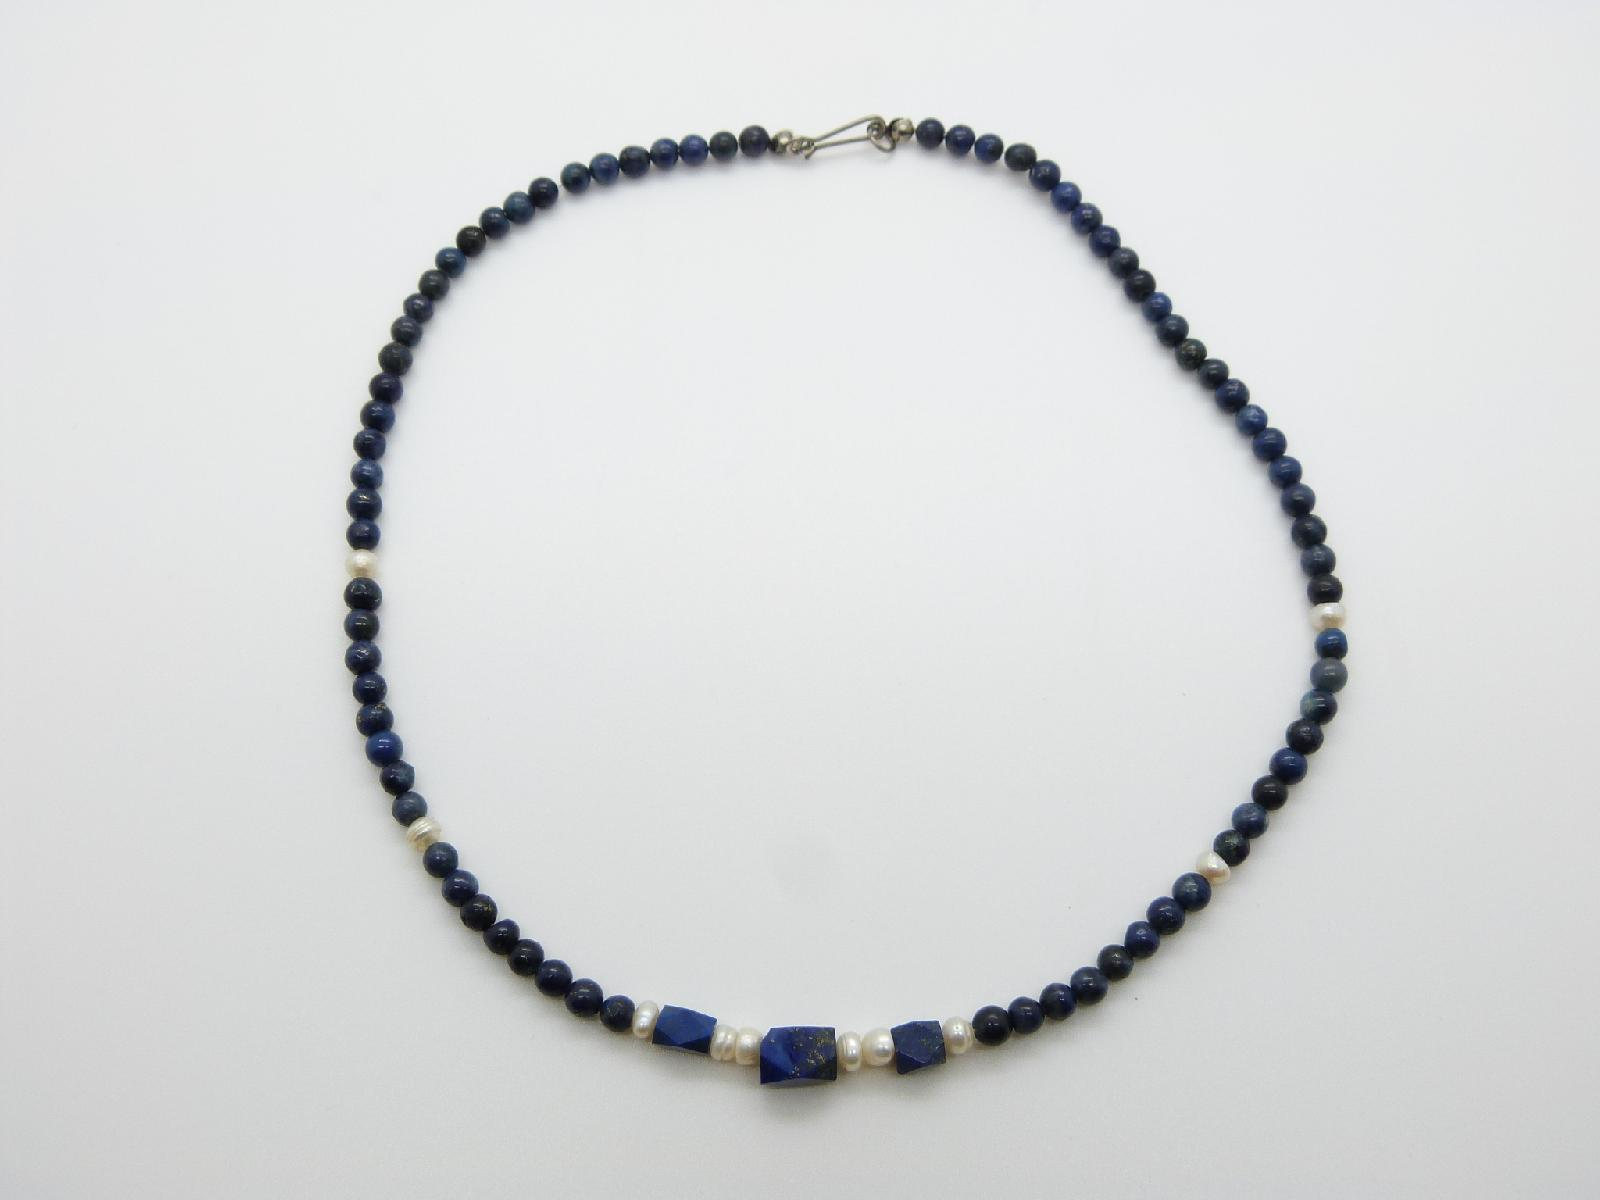 £13.00 - Pretty and Feminine Blue Lapis Bead and Freshwater Pearl Necklace 43cms